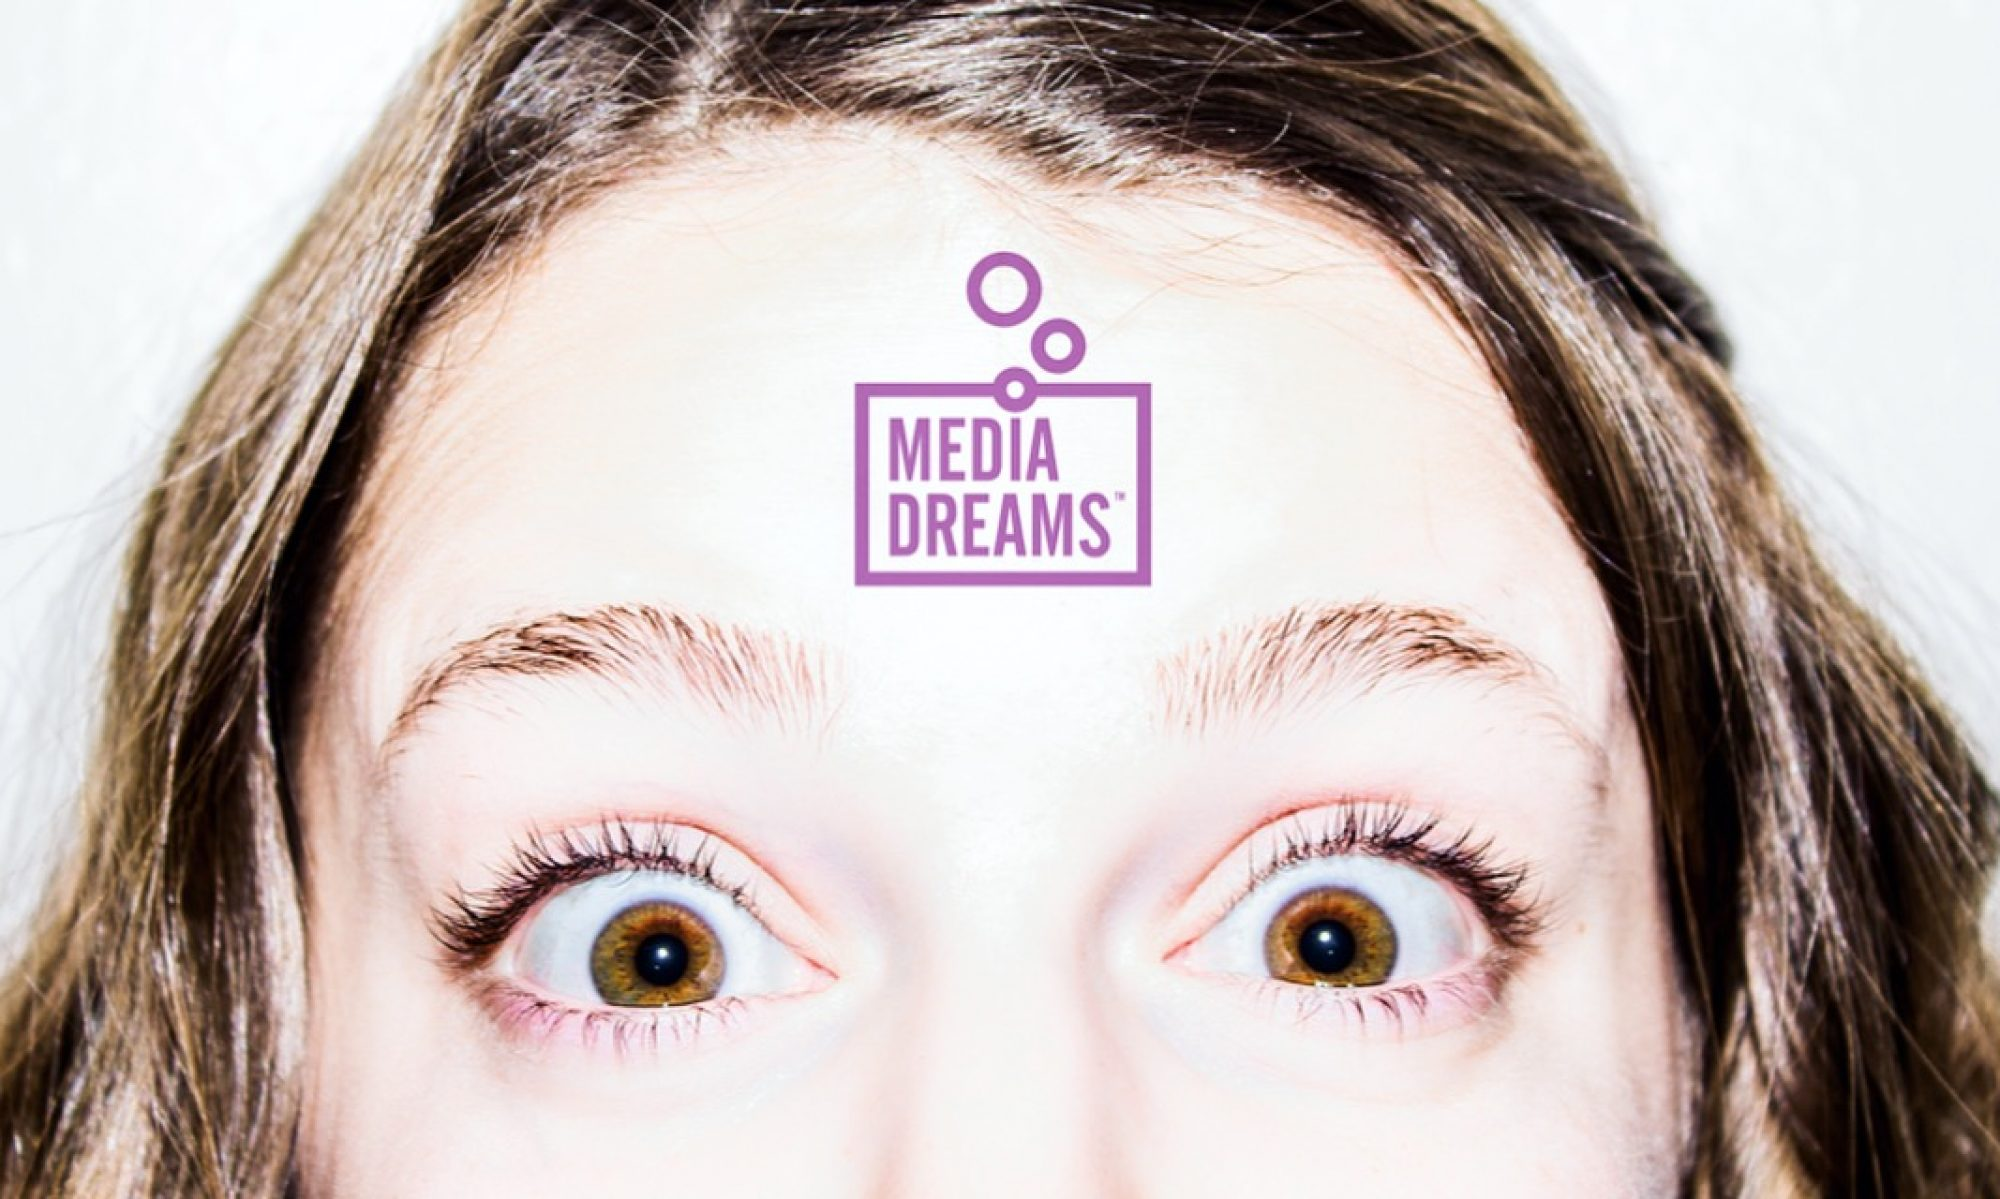 MEDIA DREAMS | The marketing & storytelling agency with performances